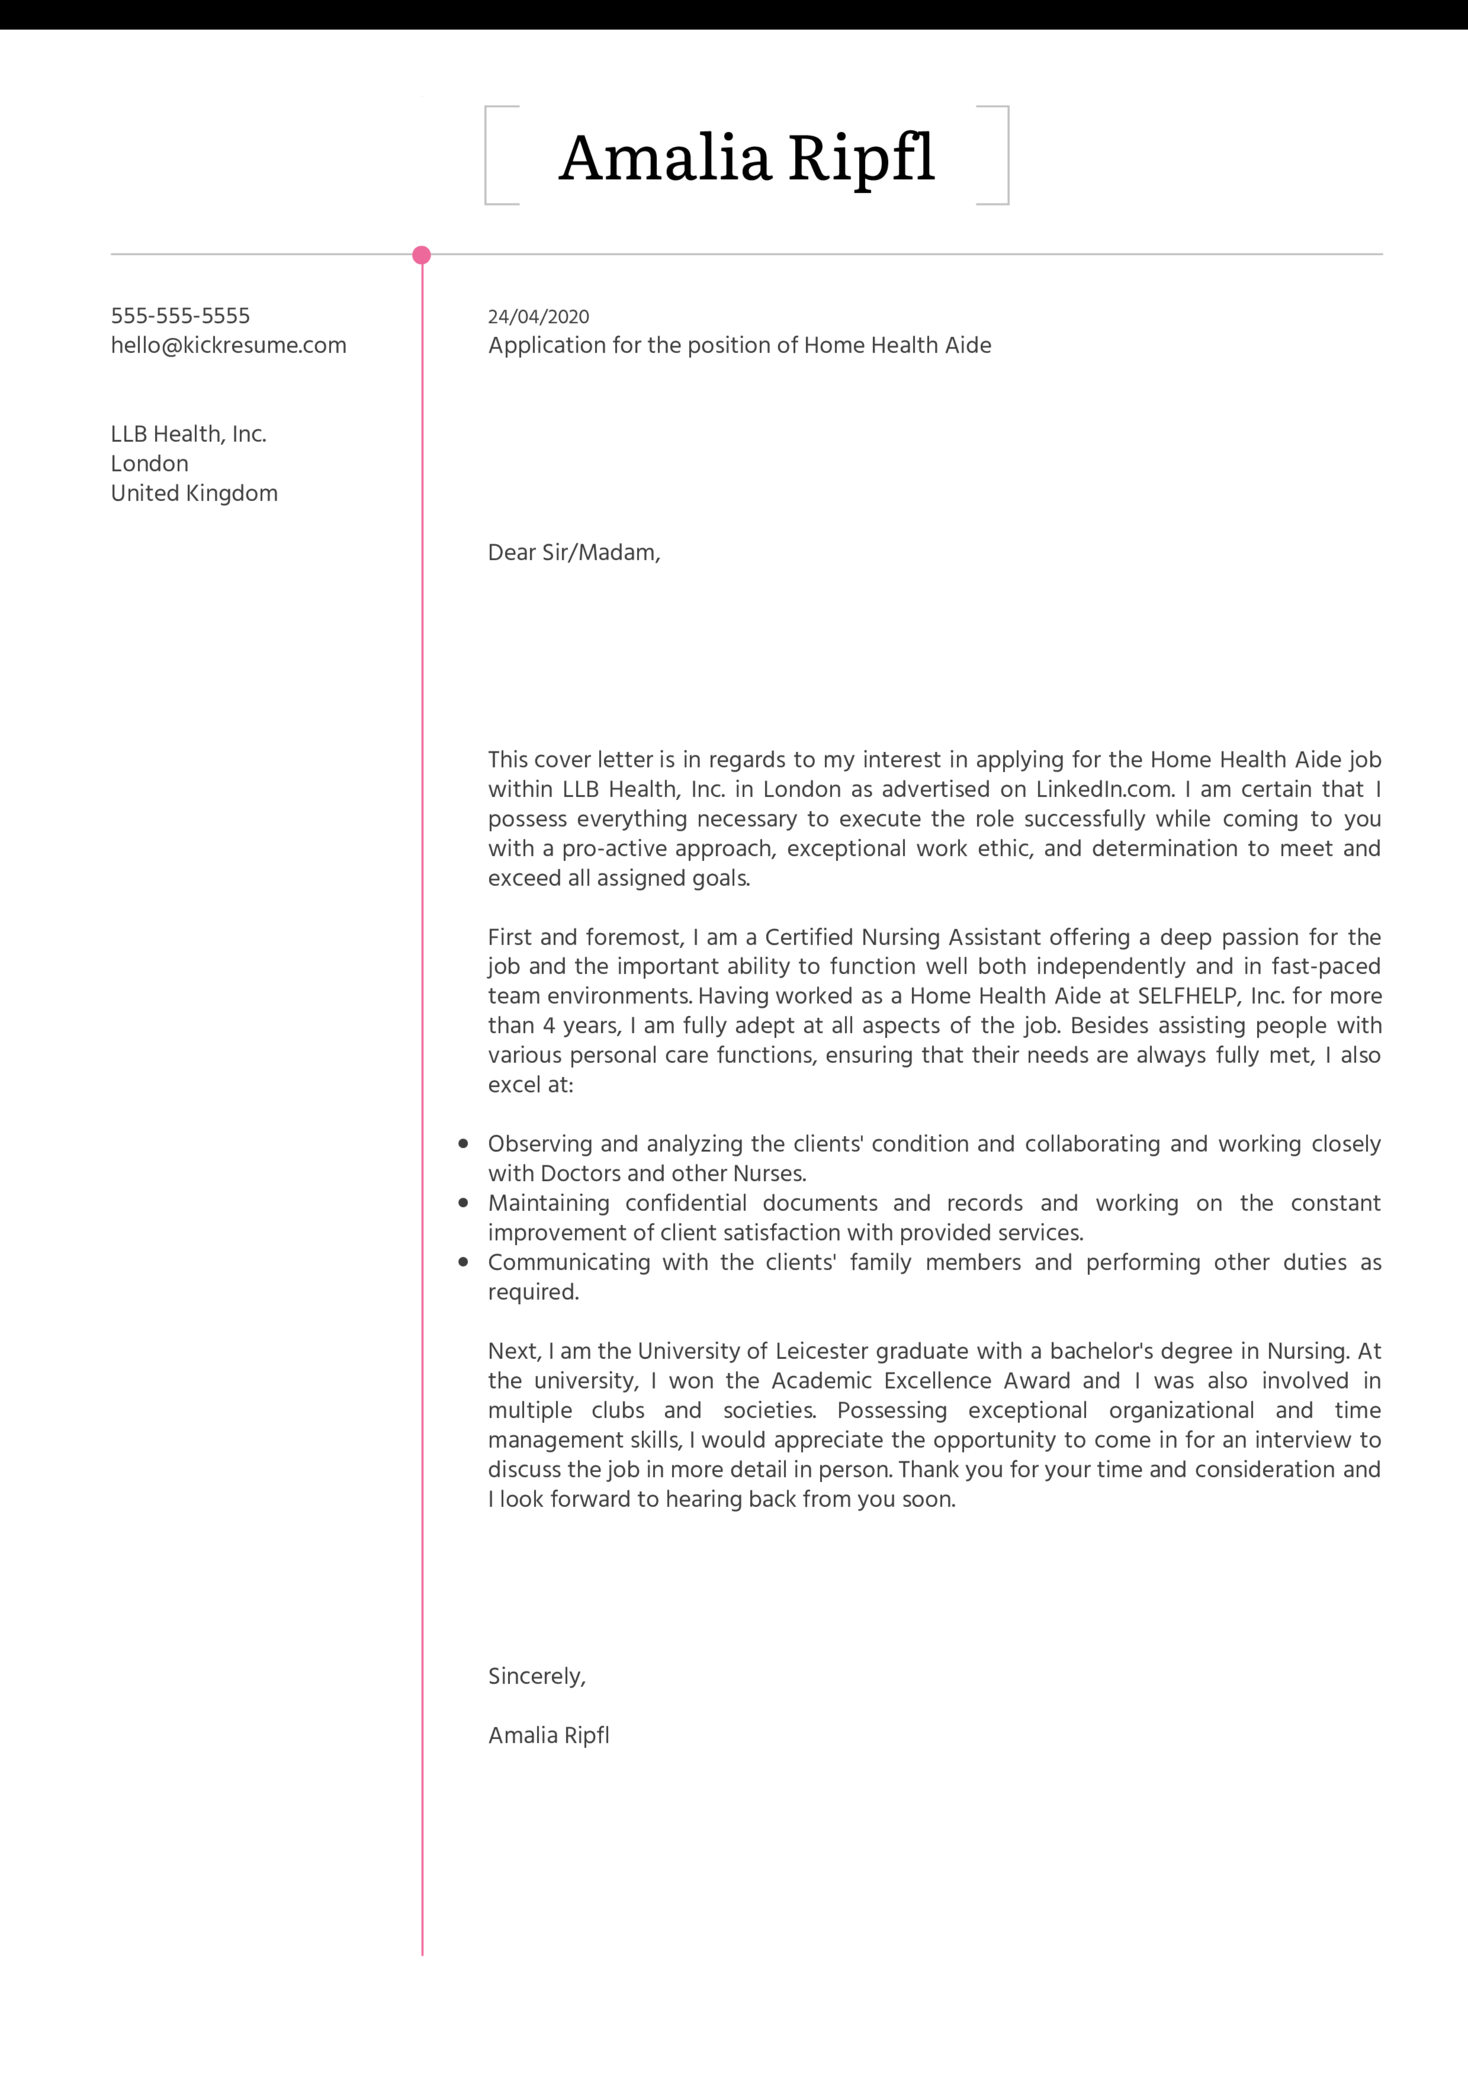 Home Health Aide Cover Letter Example Kickresume